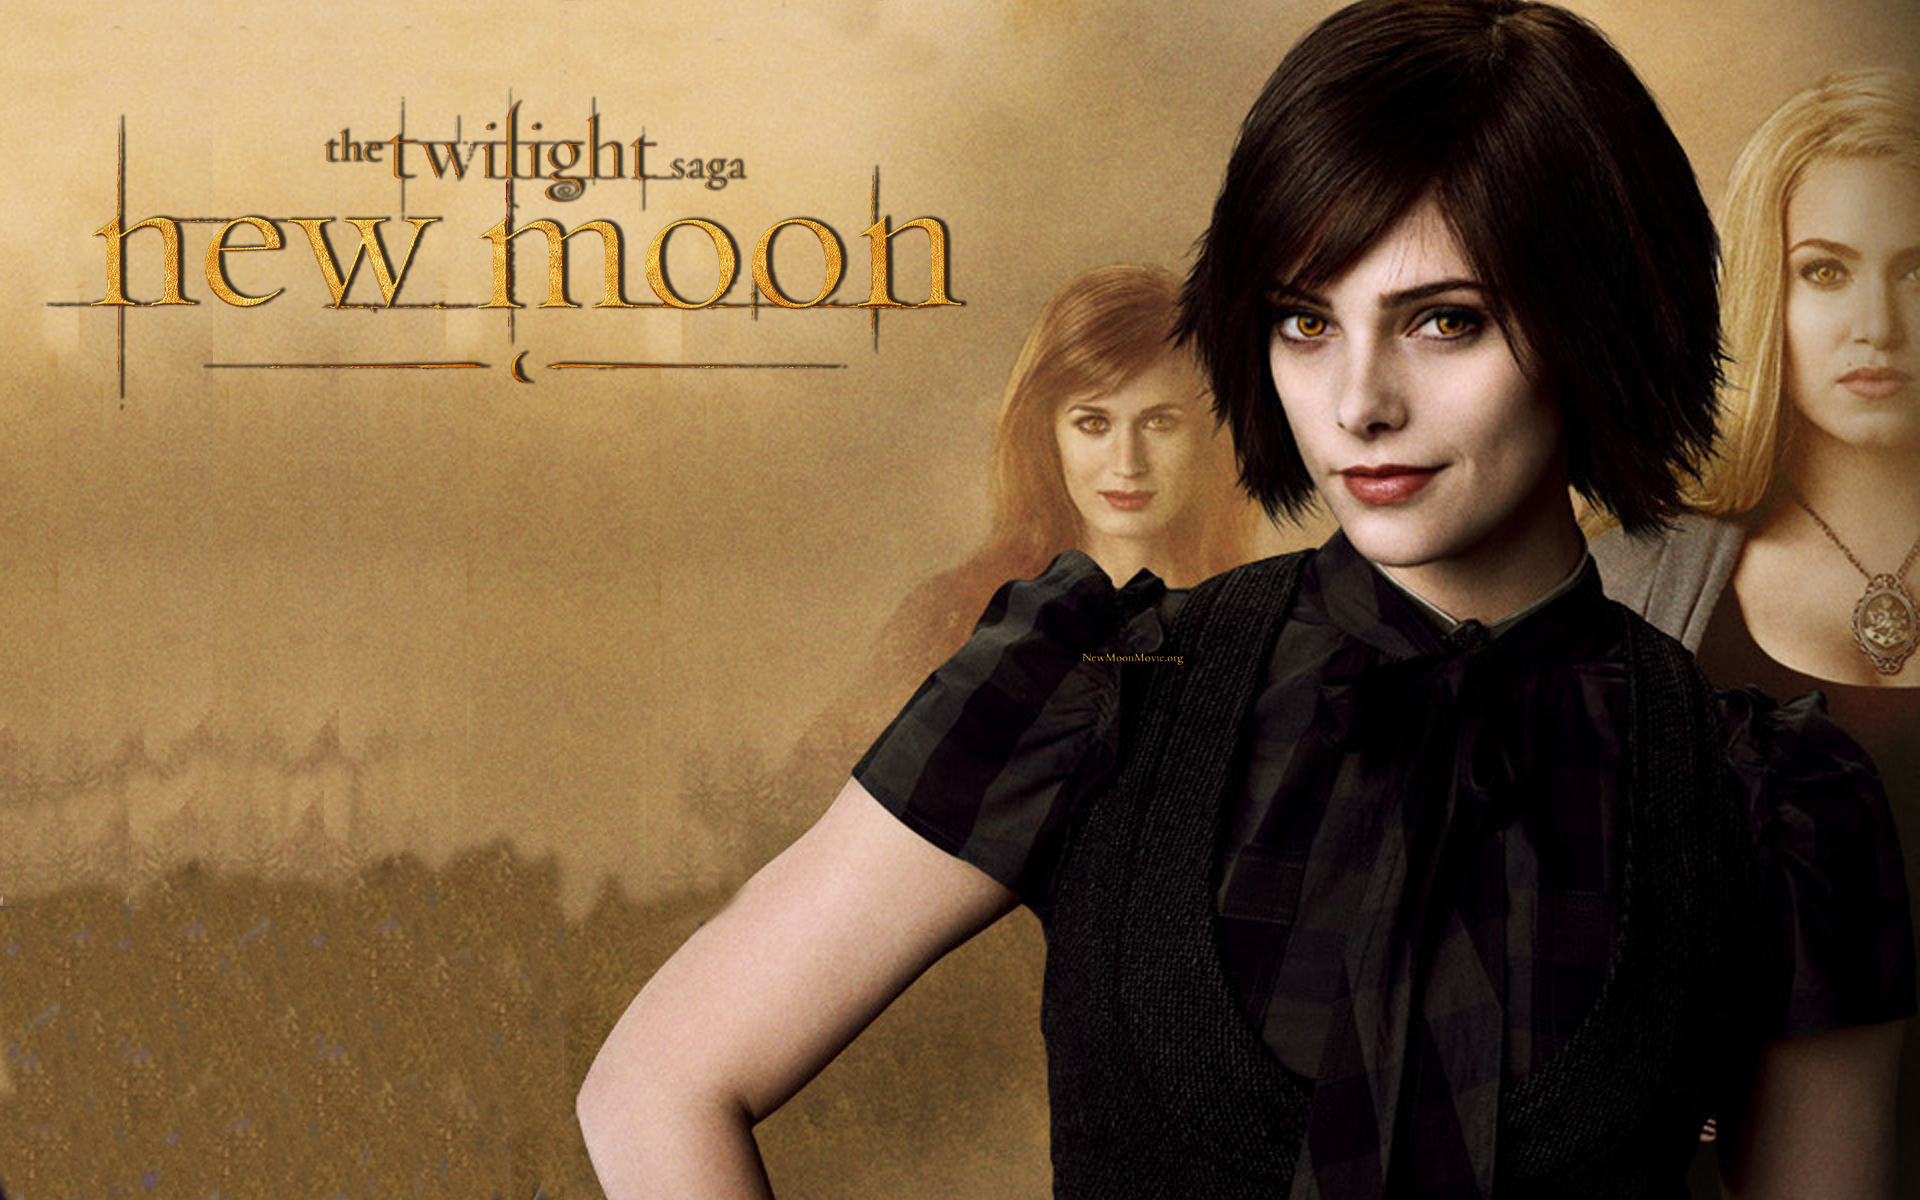 http://images2.fanpop.com/images/photos/7200000/THE-CULLENS-NEW-MOON-WALLPAPER-twilight-series-7245108-1920-1200.jpg